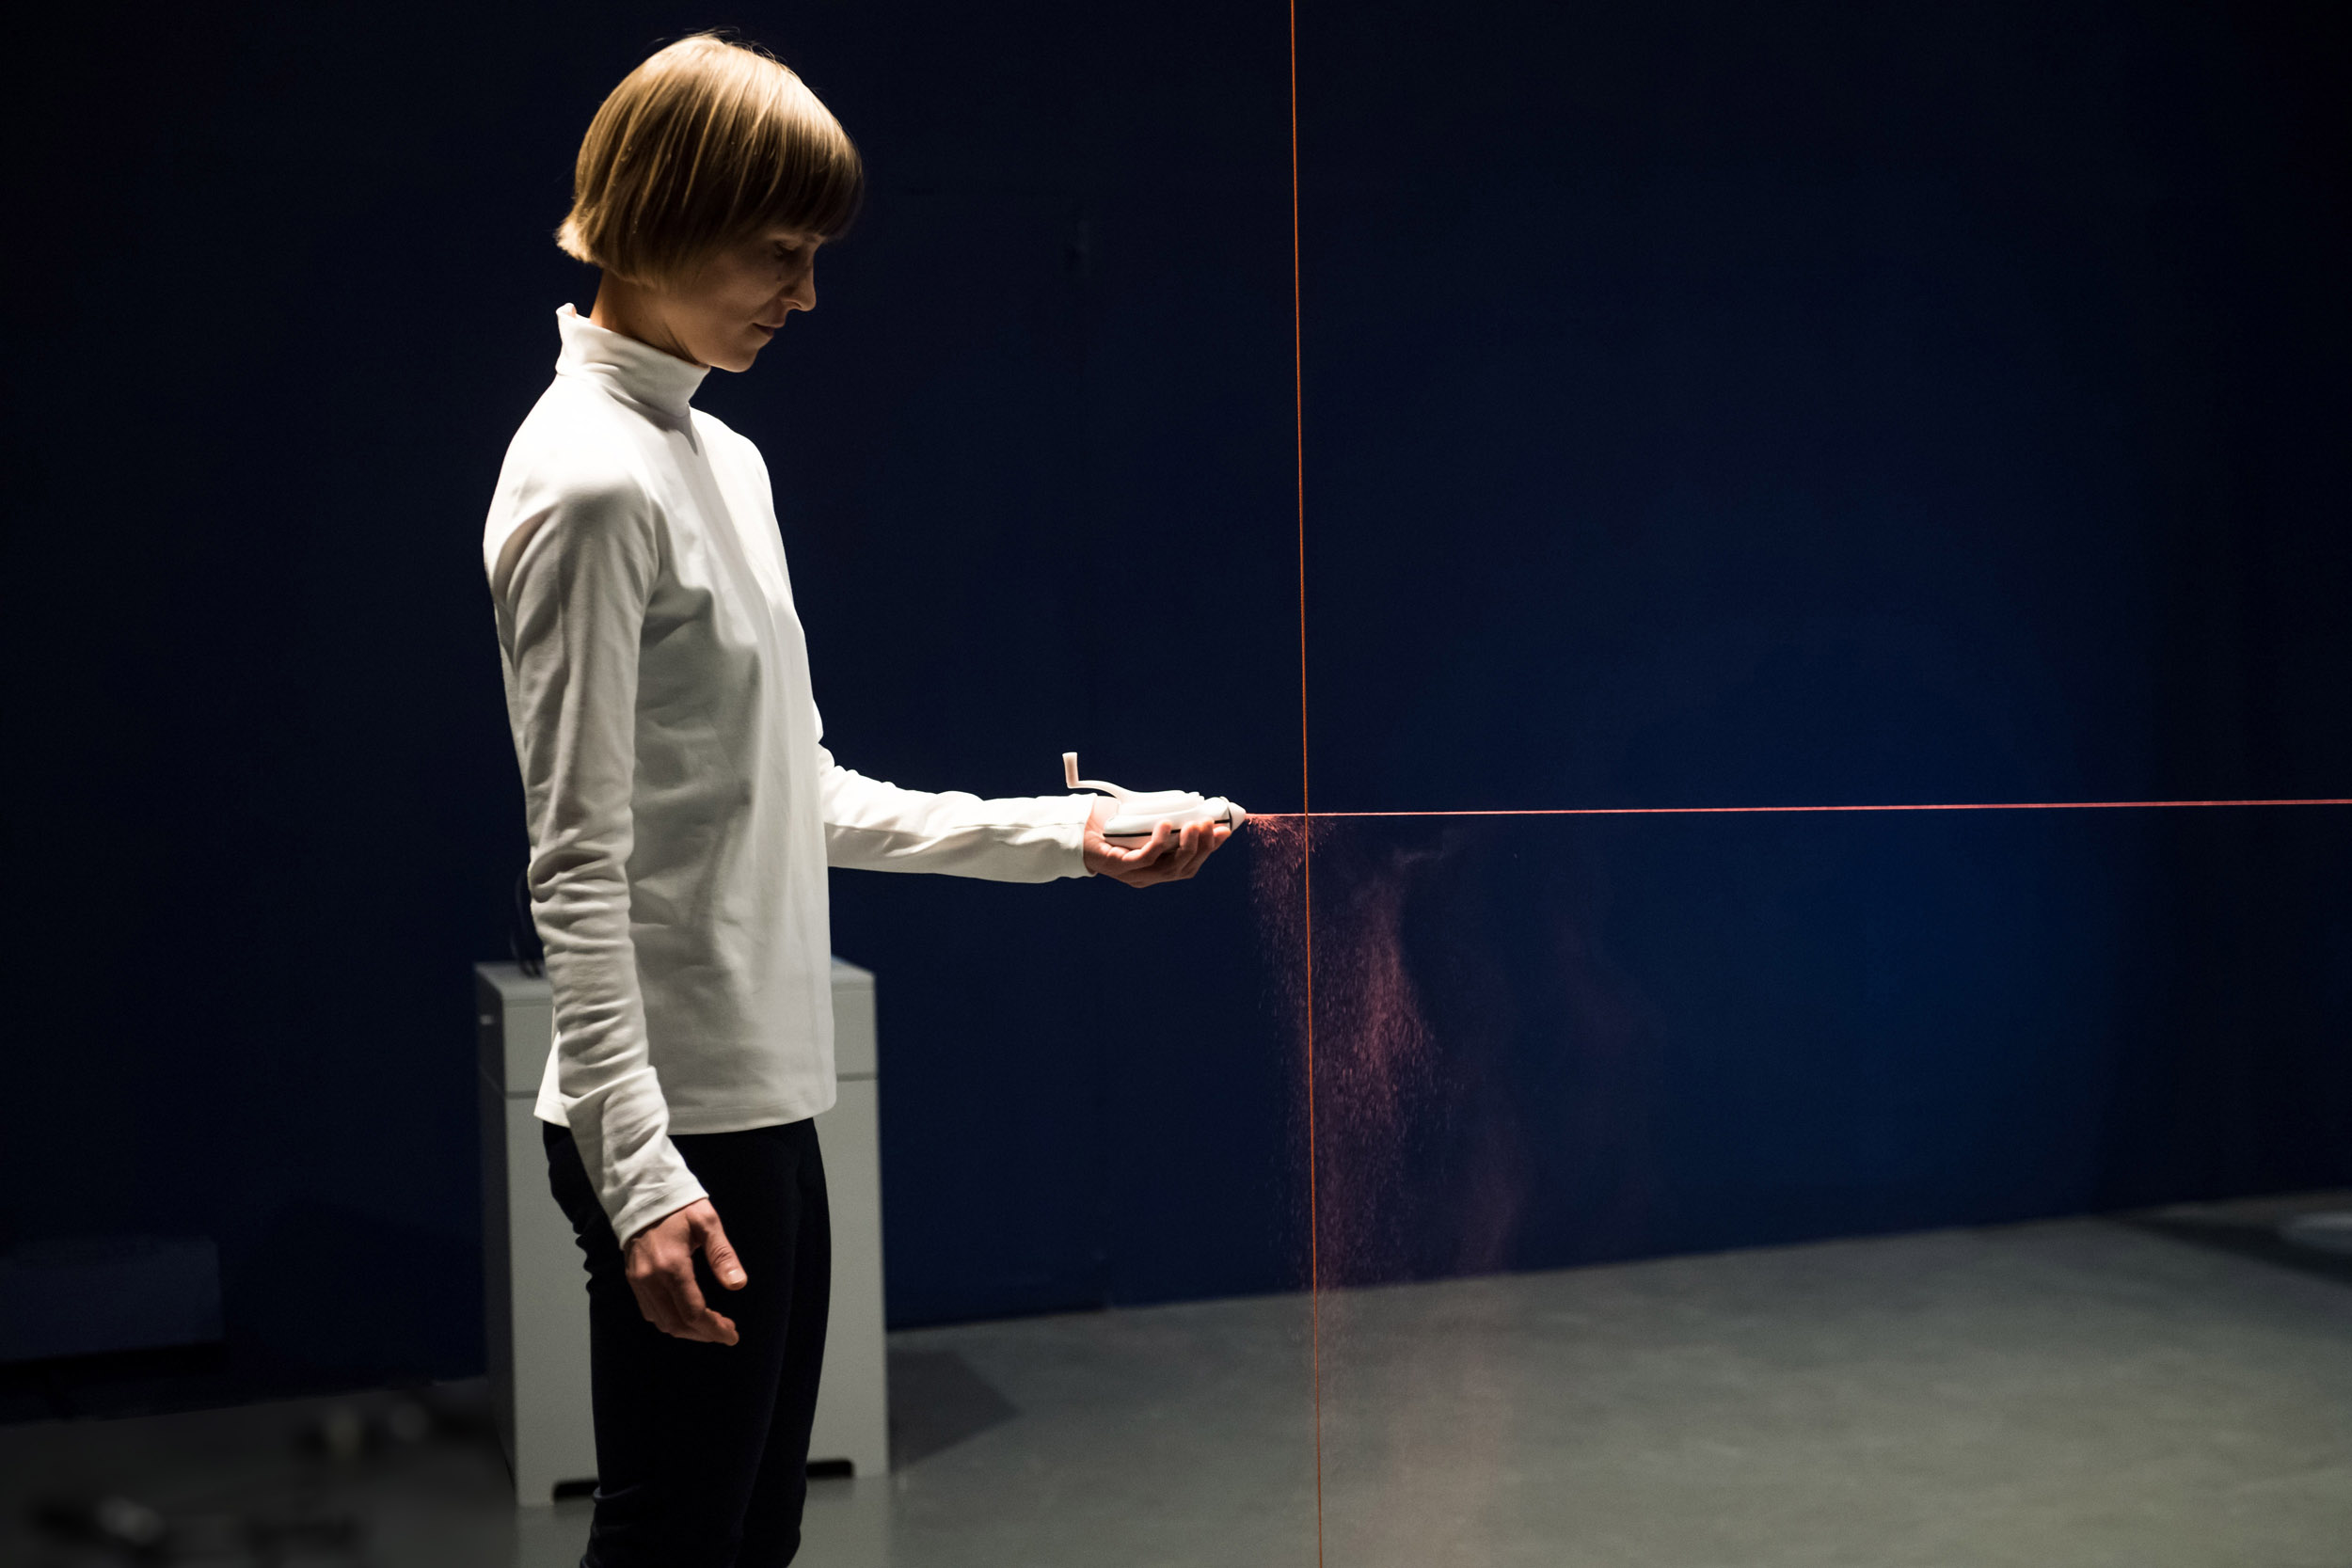 Datum is a dance performance that explores our conscious spatial awareness versus our empirical understanding of space using tools. The performance was a collaboration with dance artists Siobhan Davis and Helka Kaski and toured a number of venues throughout the UK.